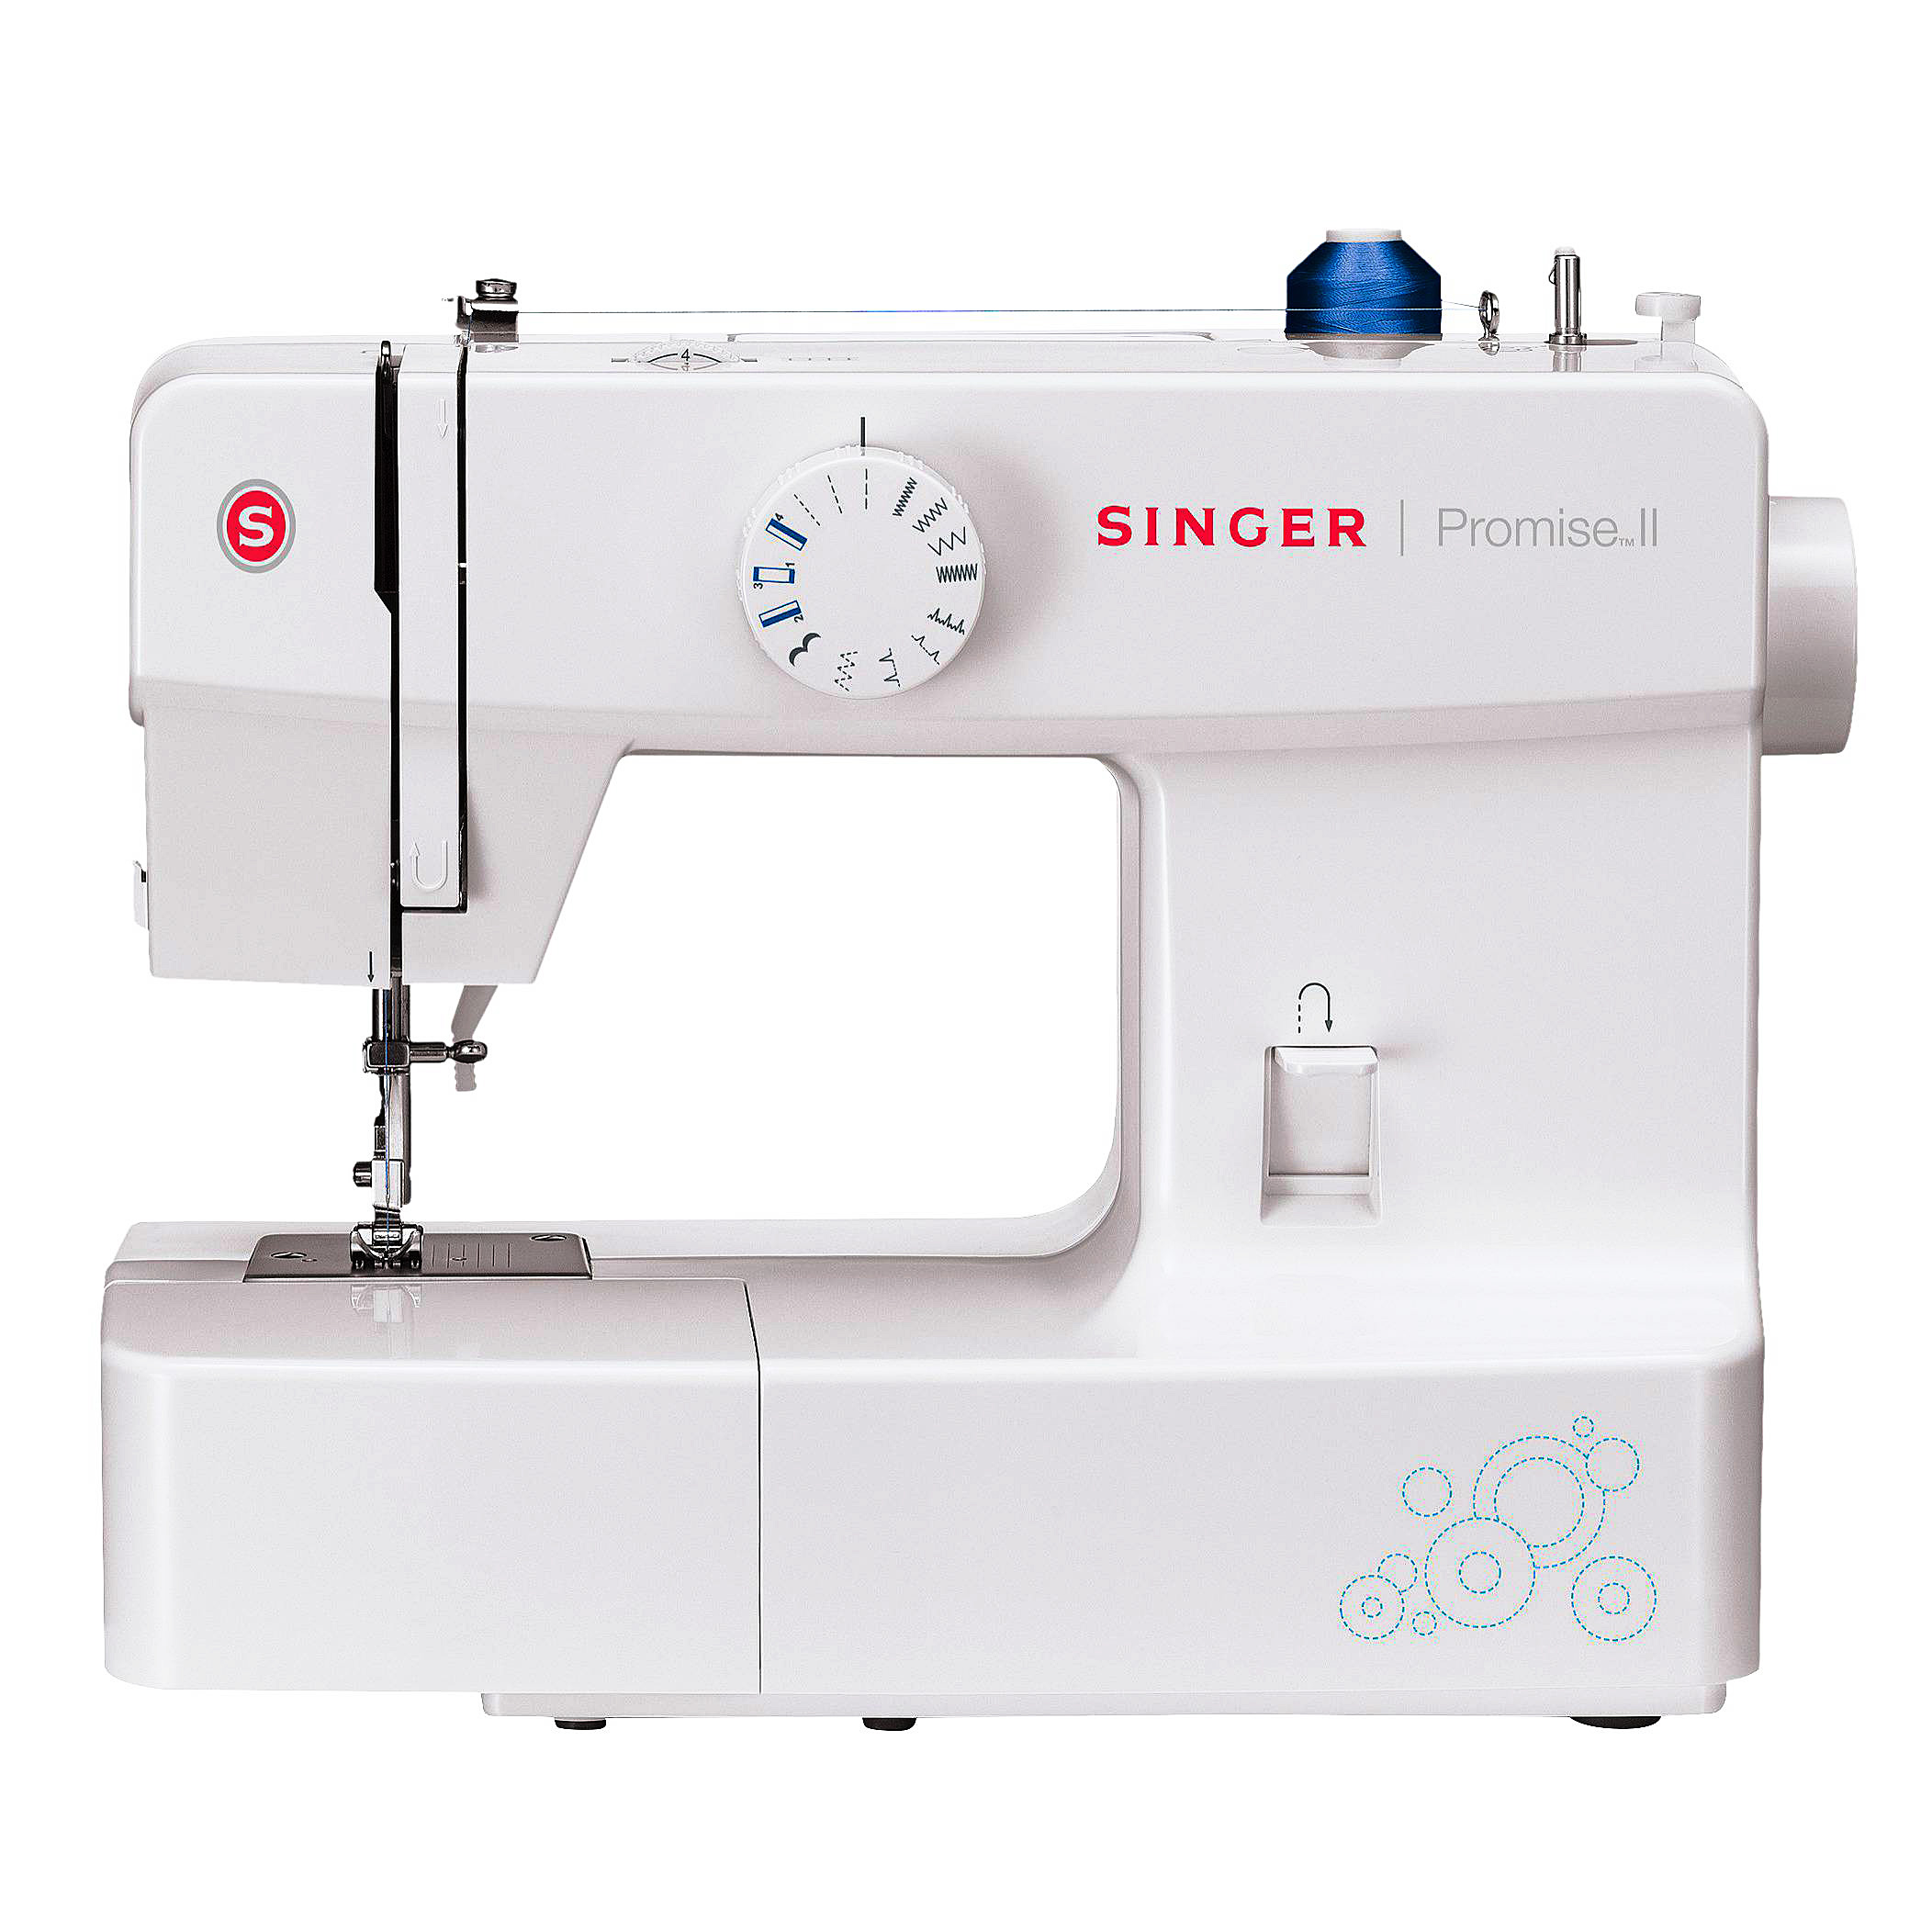 Singer Promise II Sewing Machine | Sewing Machines Plus